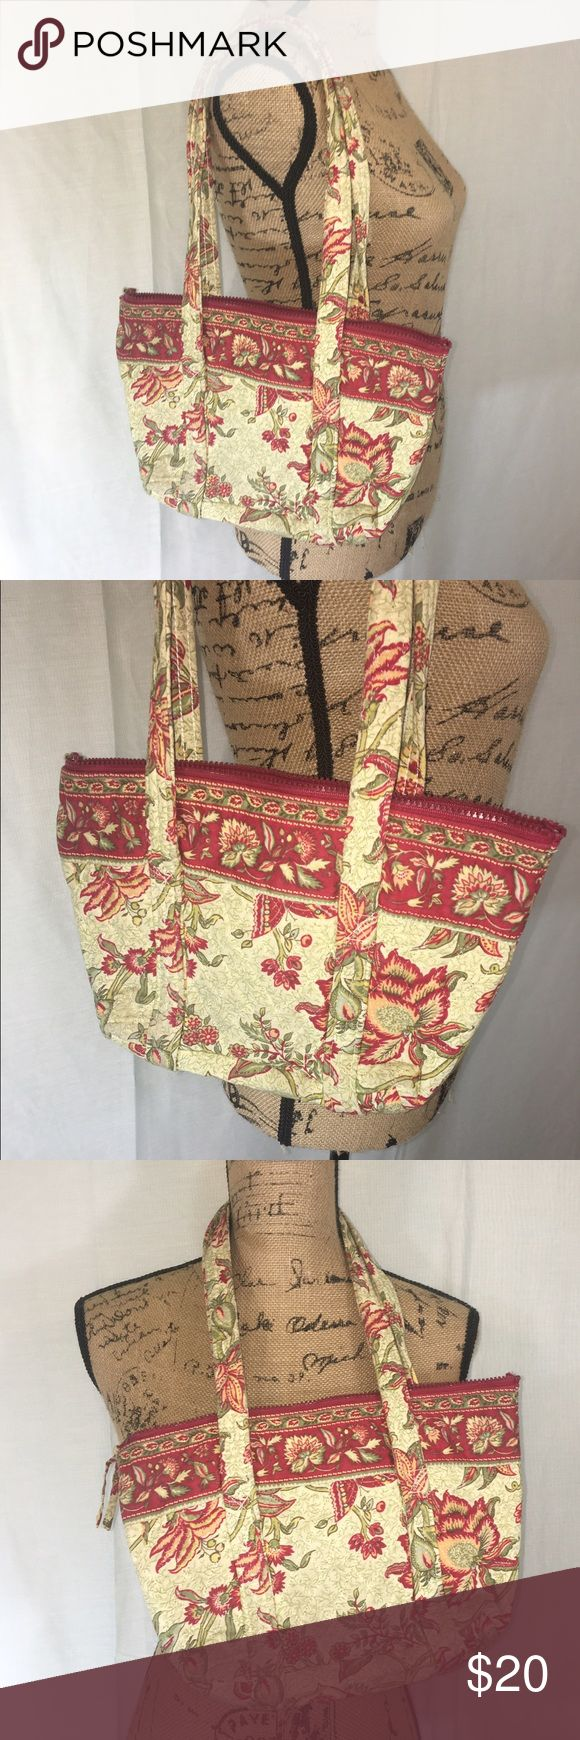 Pretty Quilted Shoulder Bag A shoulder bag in a pretty floral pattern. In great condition! Bags Shoulder Bags